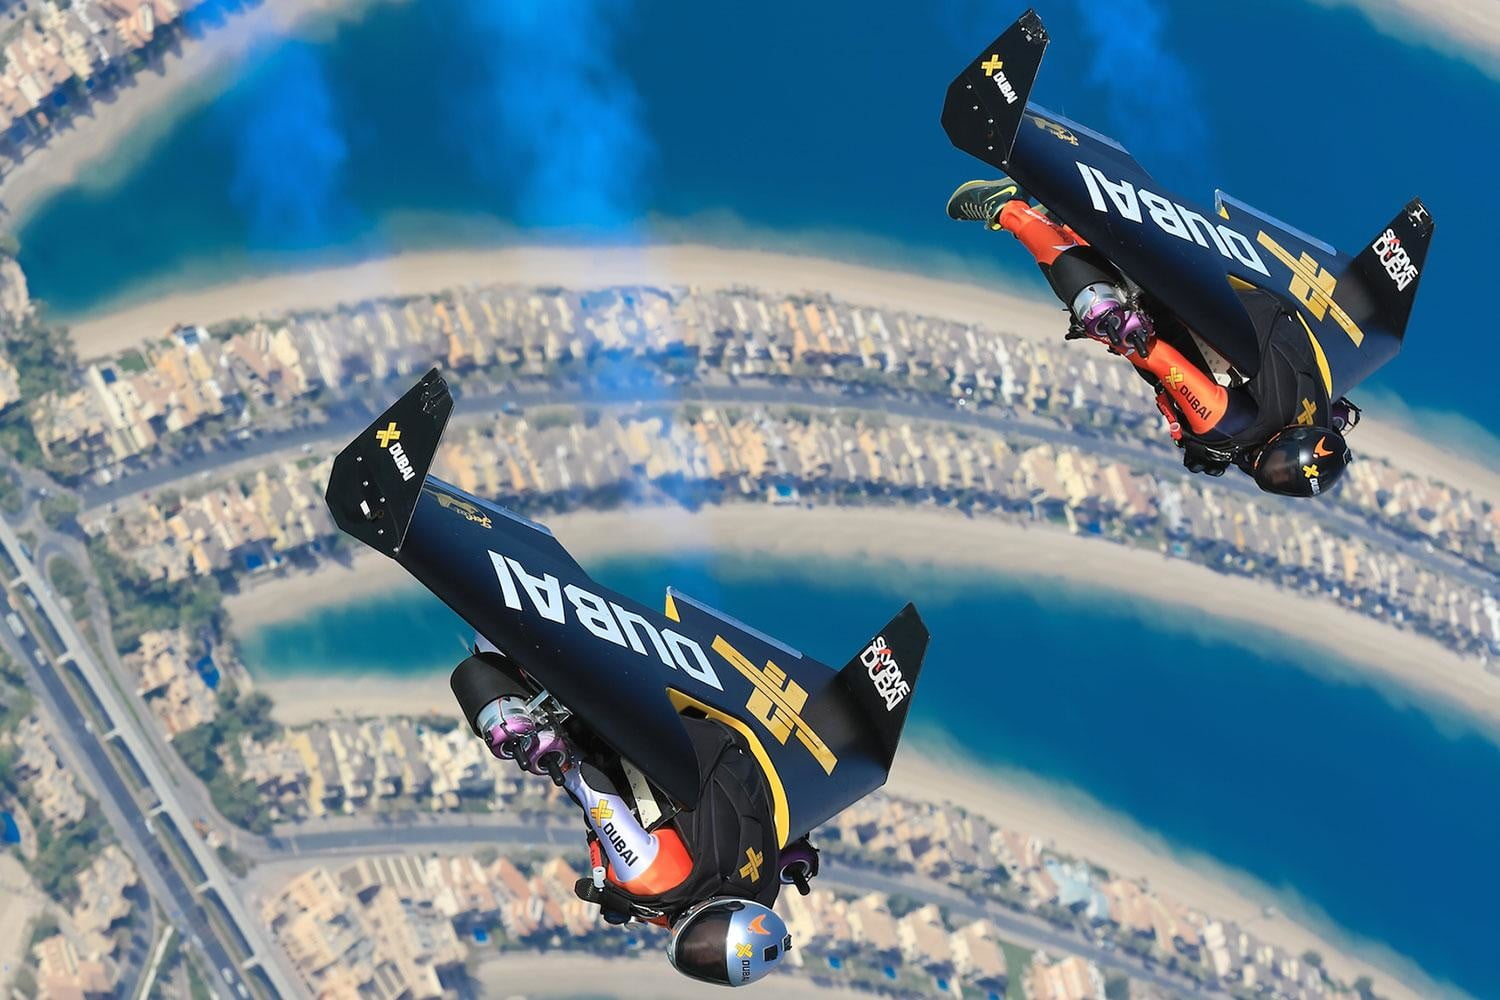 jetman dubai video news